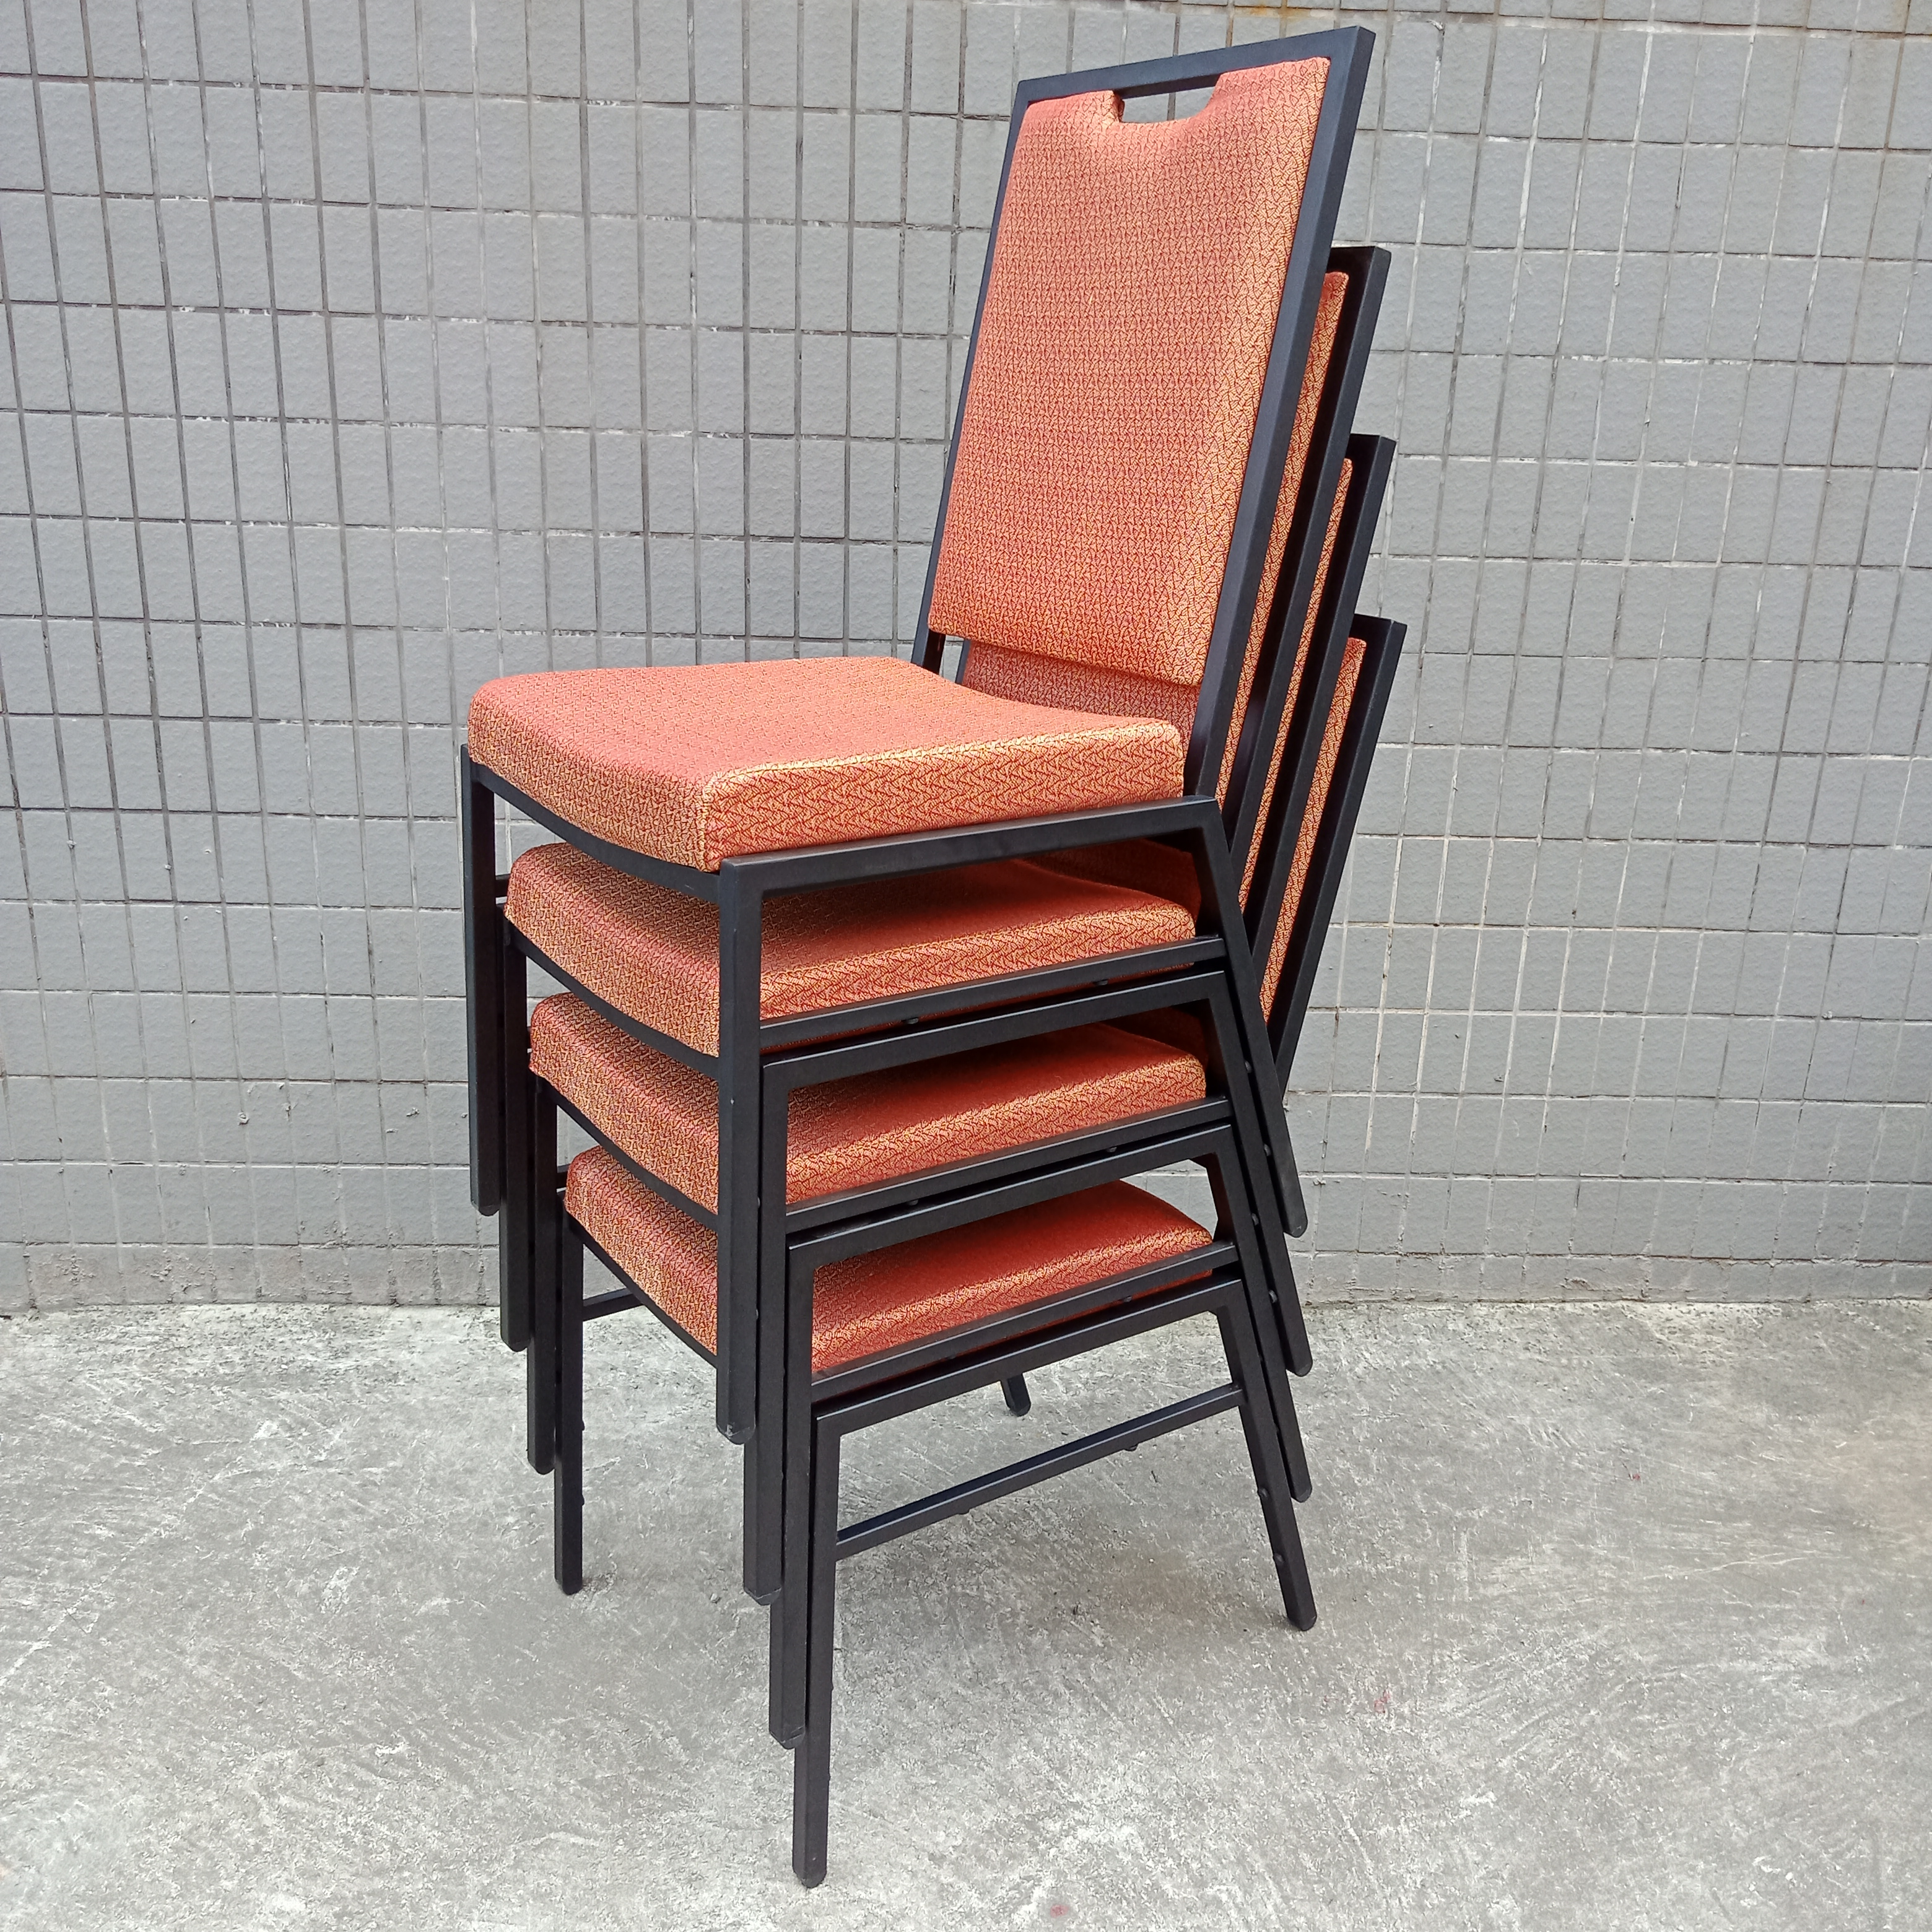 2017 wholesale price Outdoor Fabric Folding Chair -